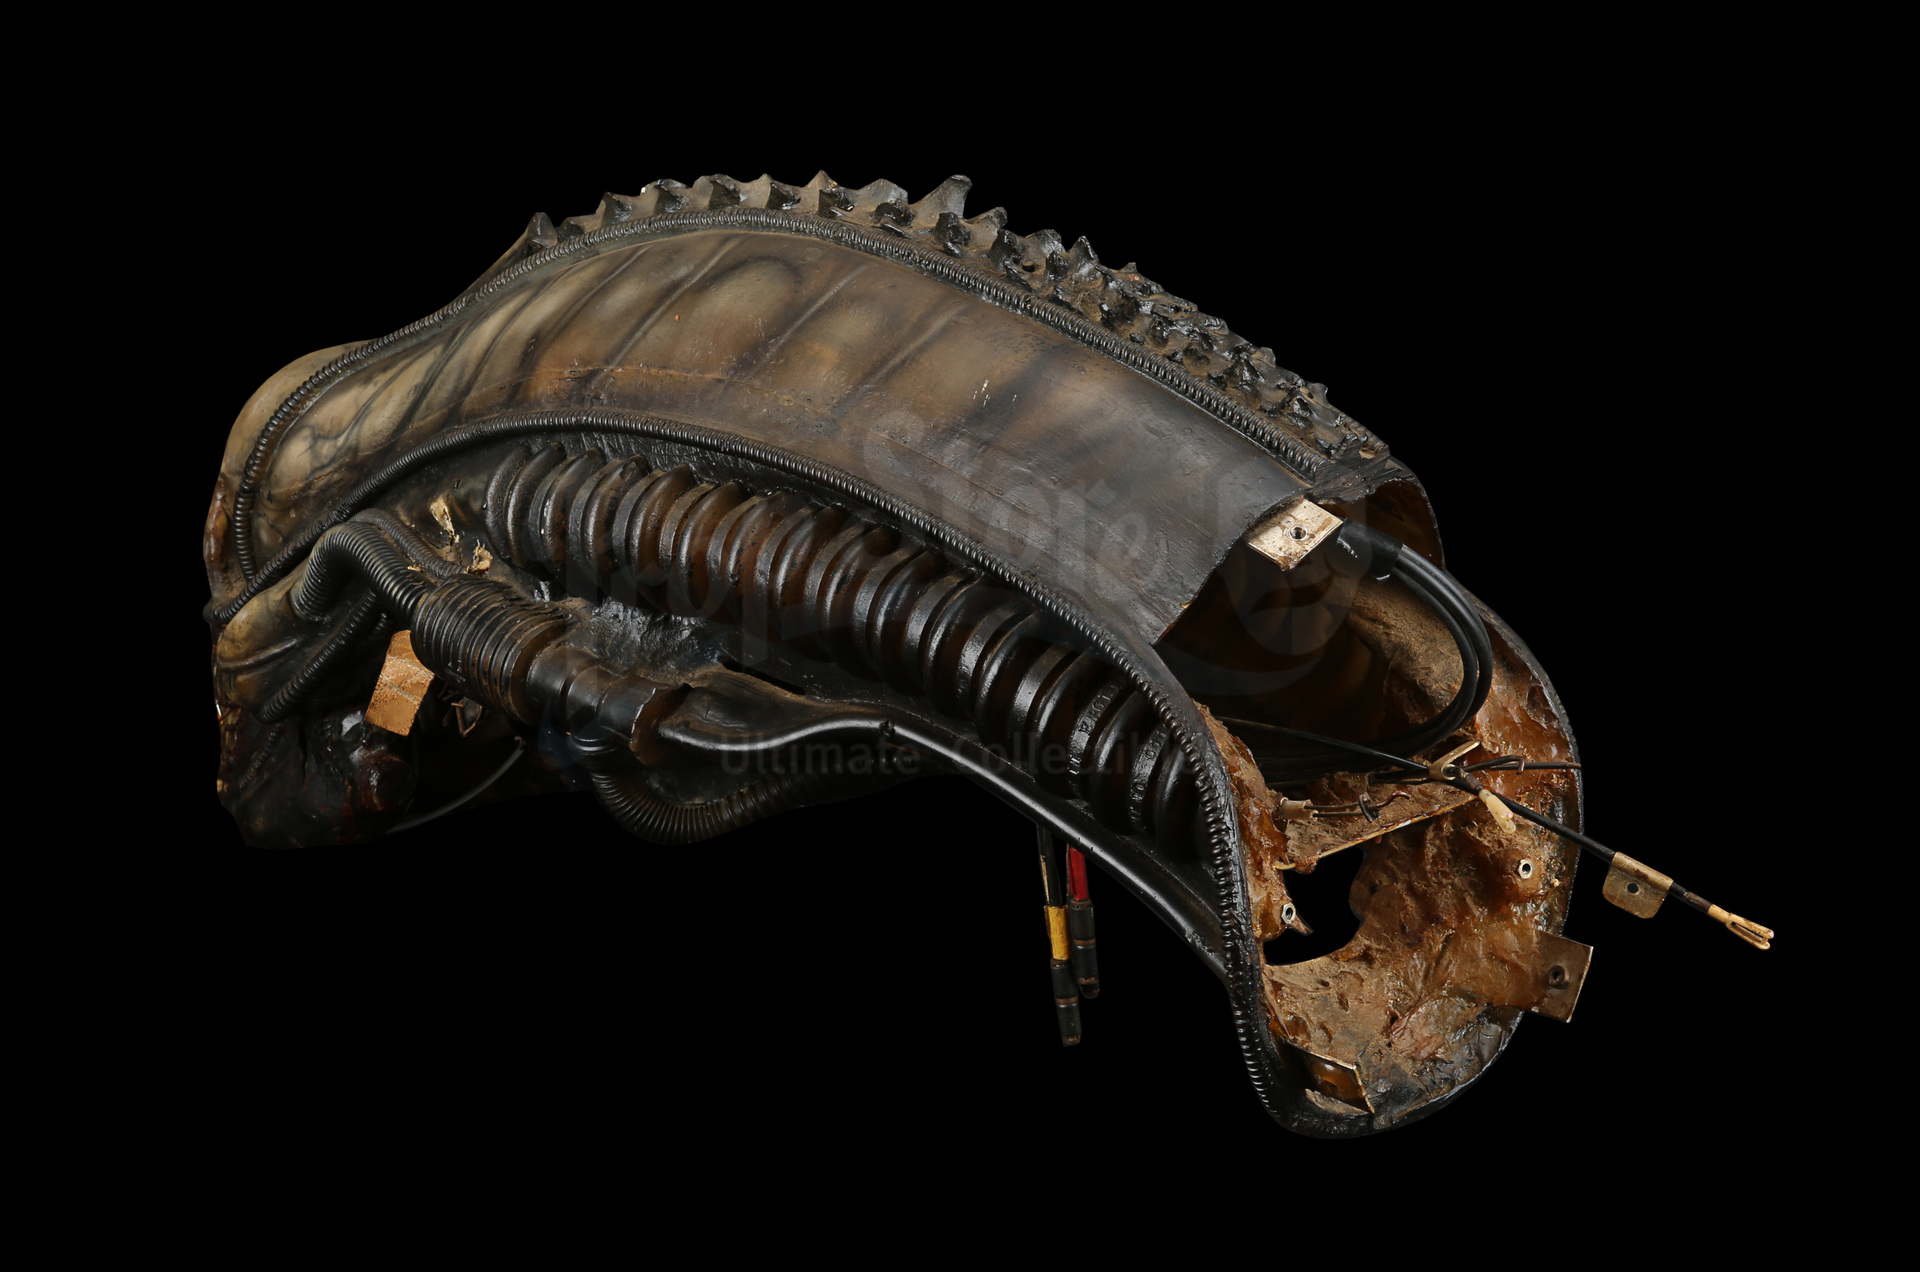 ALIEN (1979) - H.R. Giger-designed Special Effects Mechanical Alien Head - Image 12 of 34